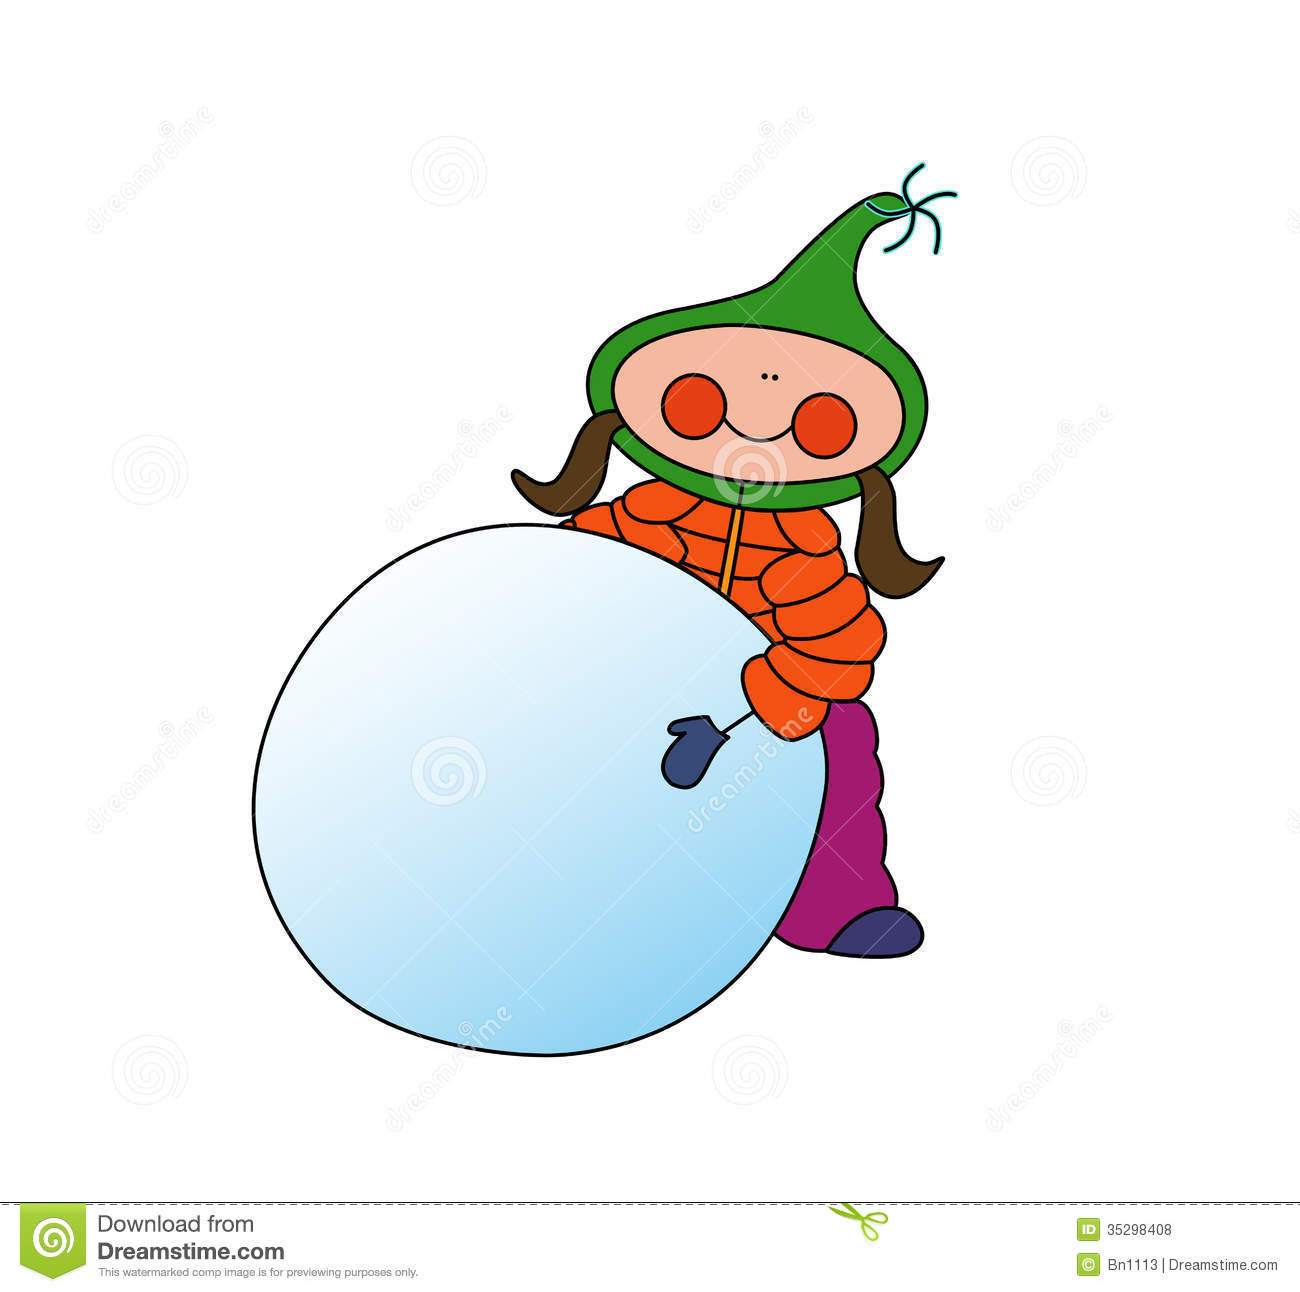 snowball-clipart-girl-rolling-snowball-cartoon-dressed-up-winter ...